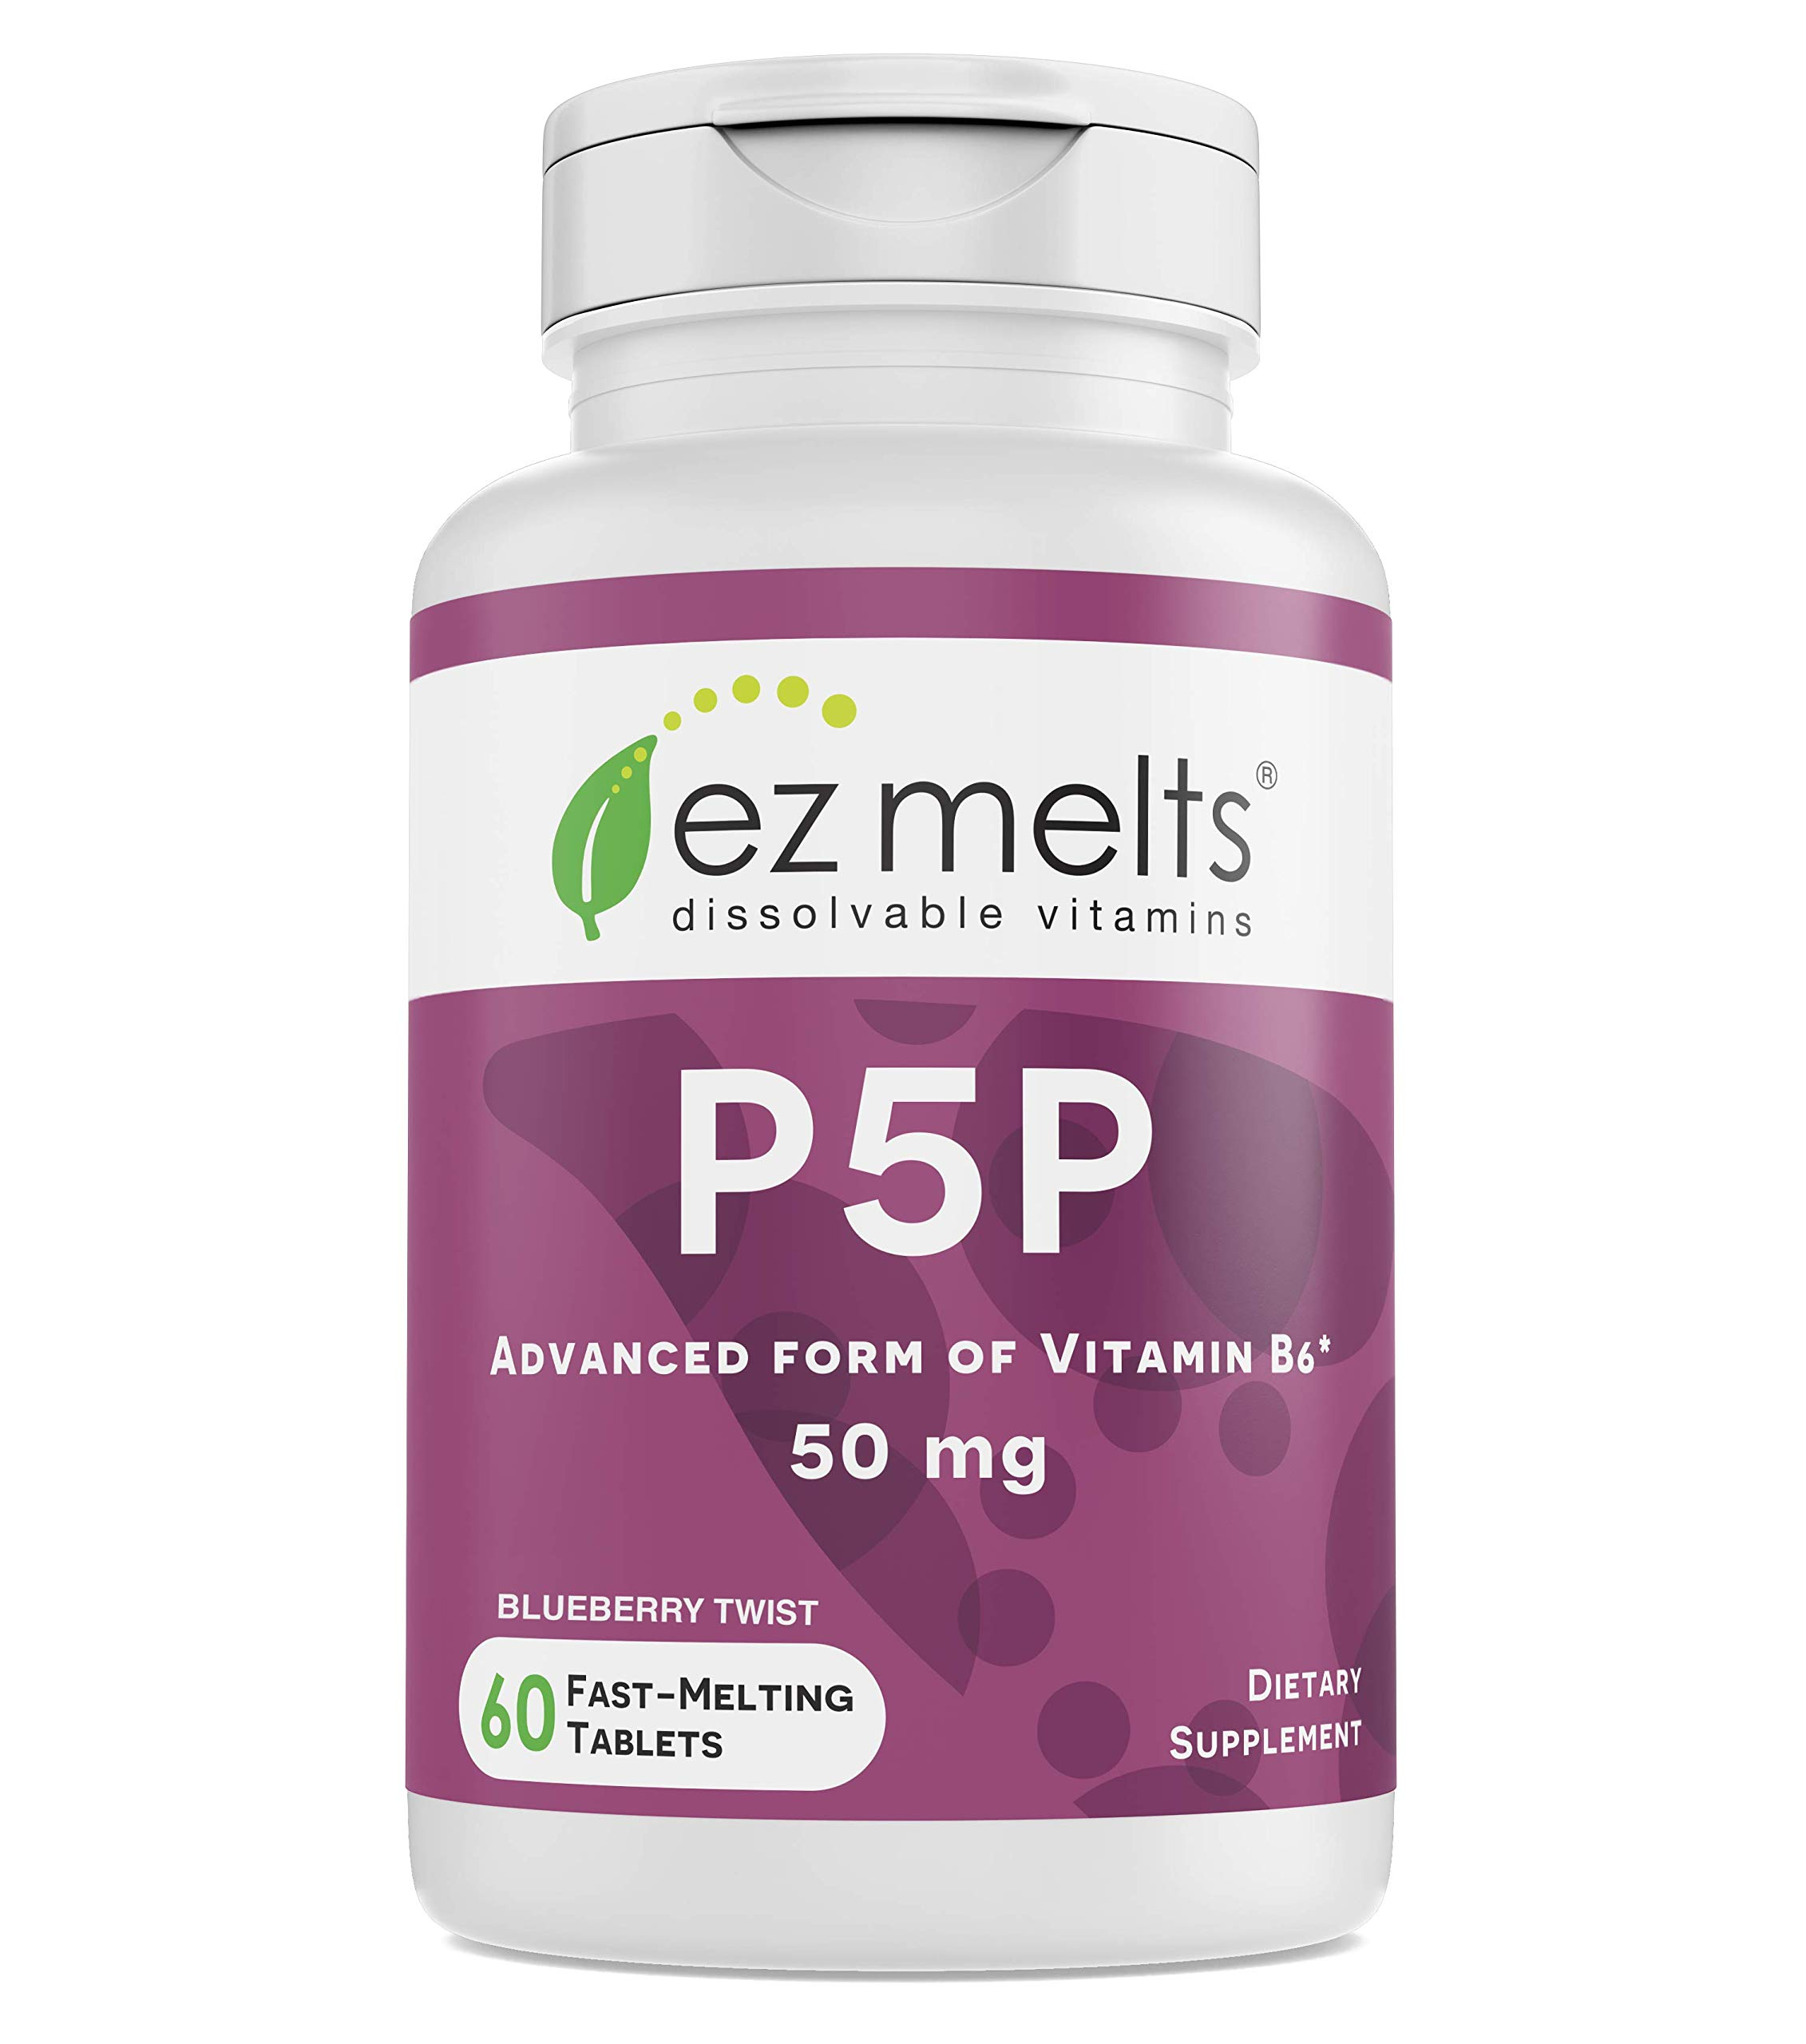 EZ Melts P5P, 50 mg, Sublingual Vitamins, Vegan, Zero Sugar, Natural Blueberry Flavor, 60 Fast Dissolve Tablets